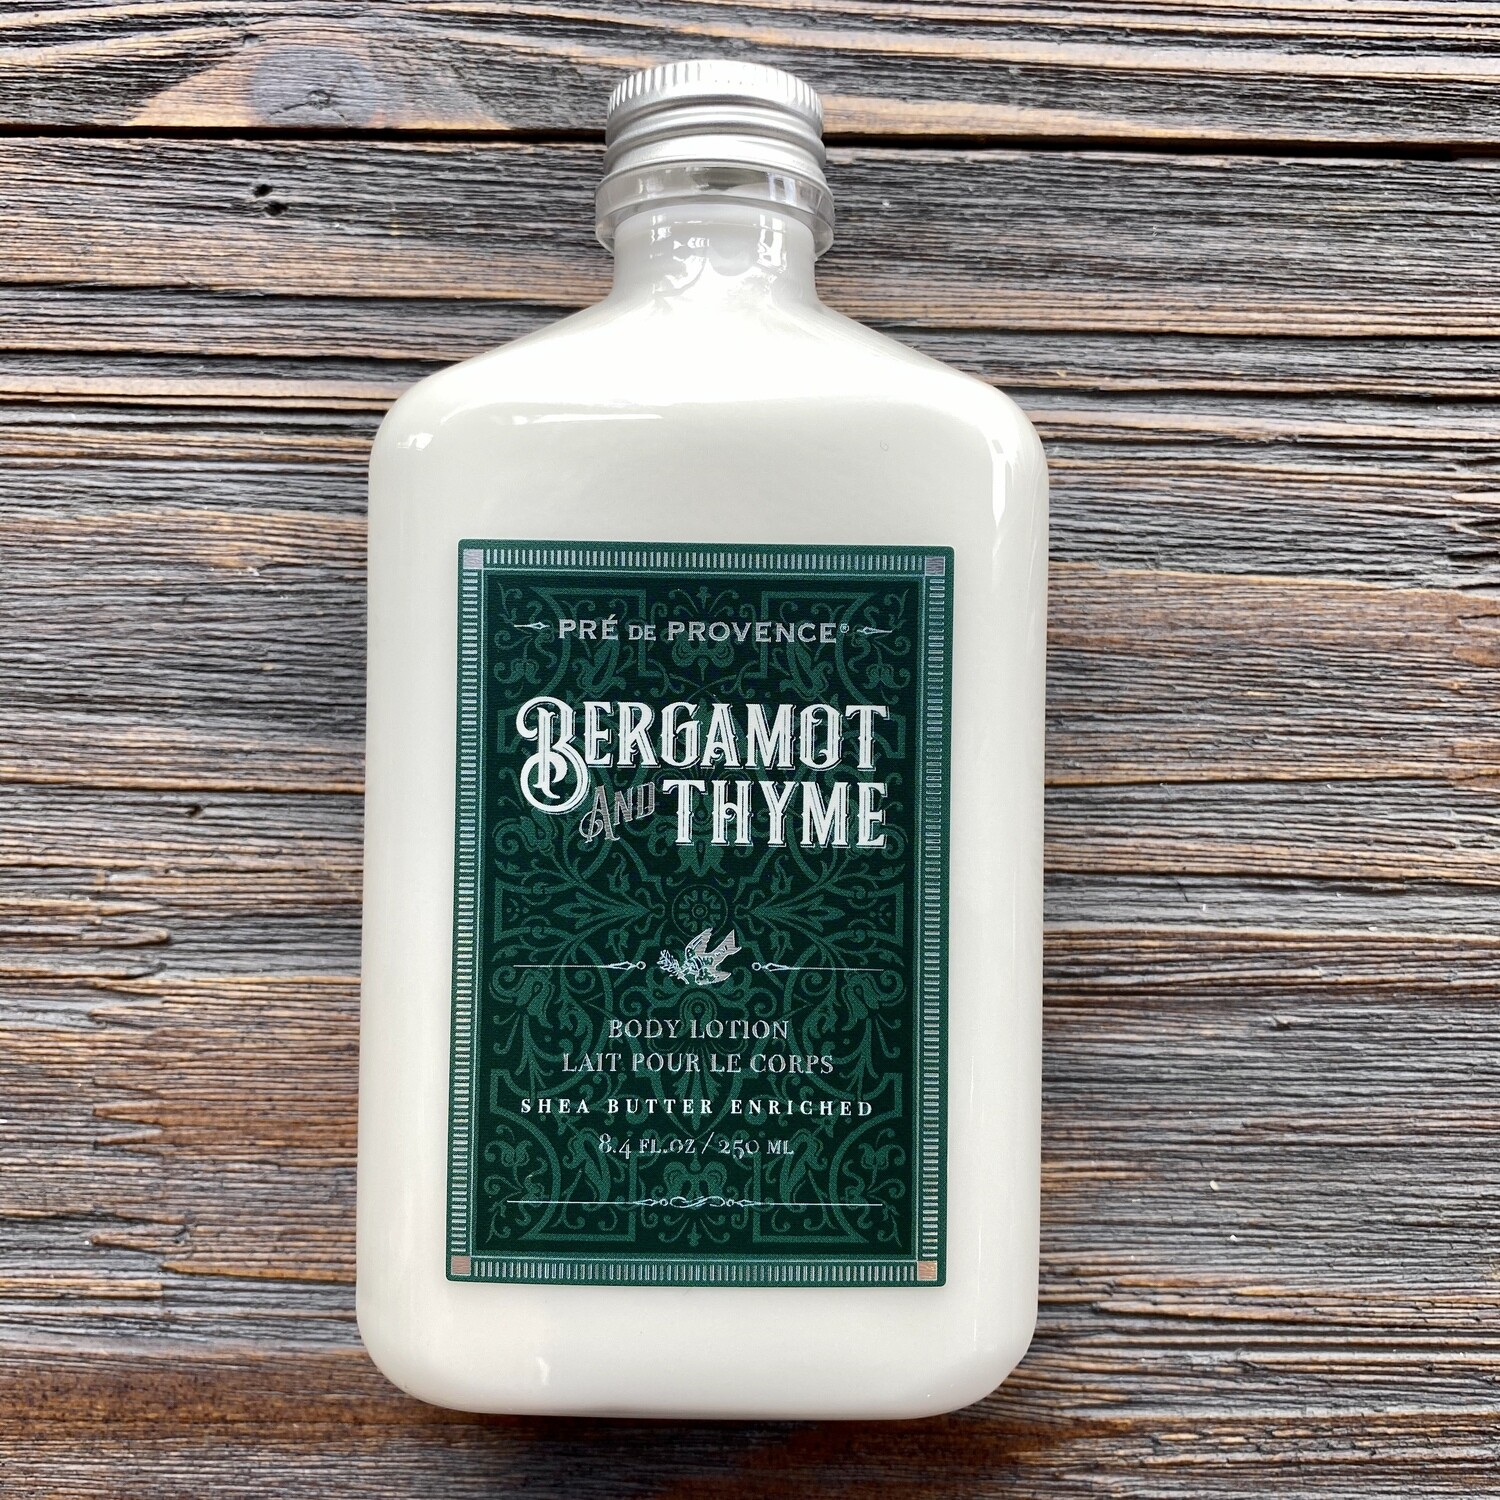 Bergamot And Thyme Body Lotion for Men